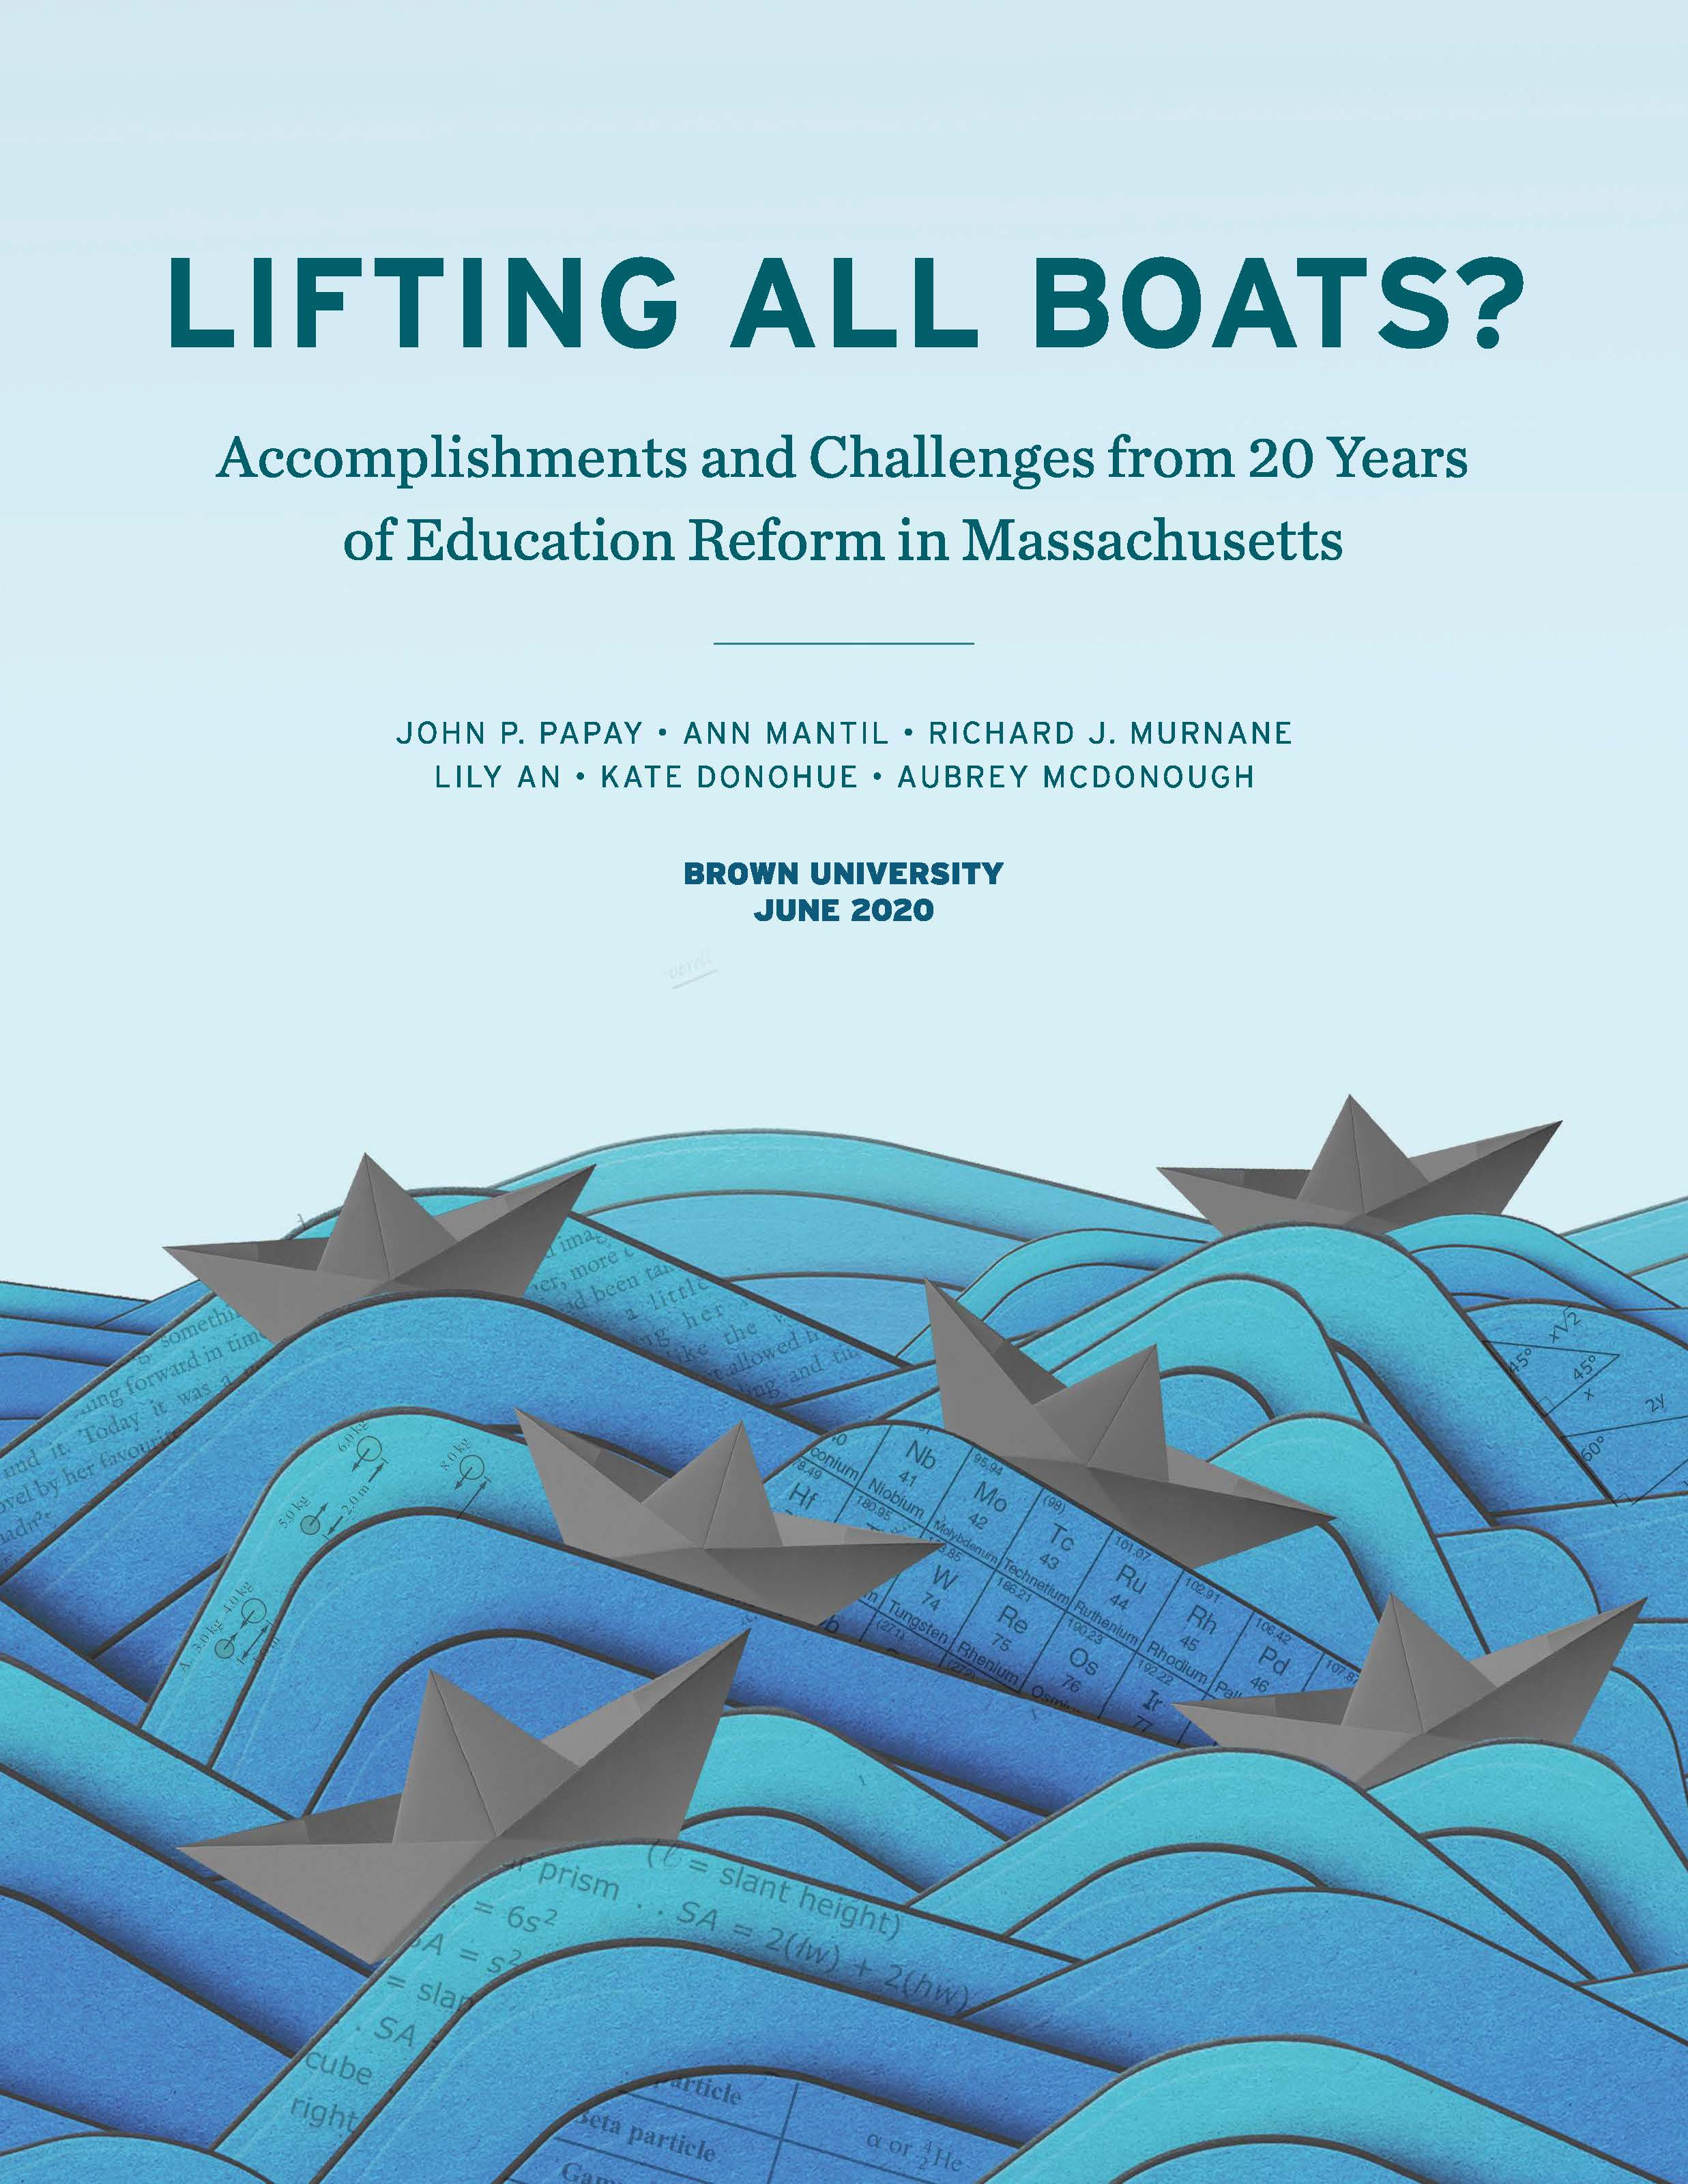 Lifting all Boats? Accomplishments and Challenges from 20 Years of Education Reform in Massachusetts